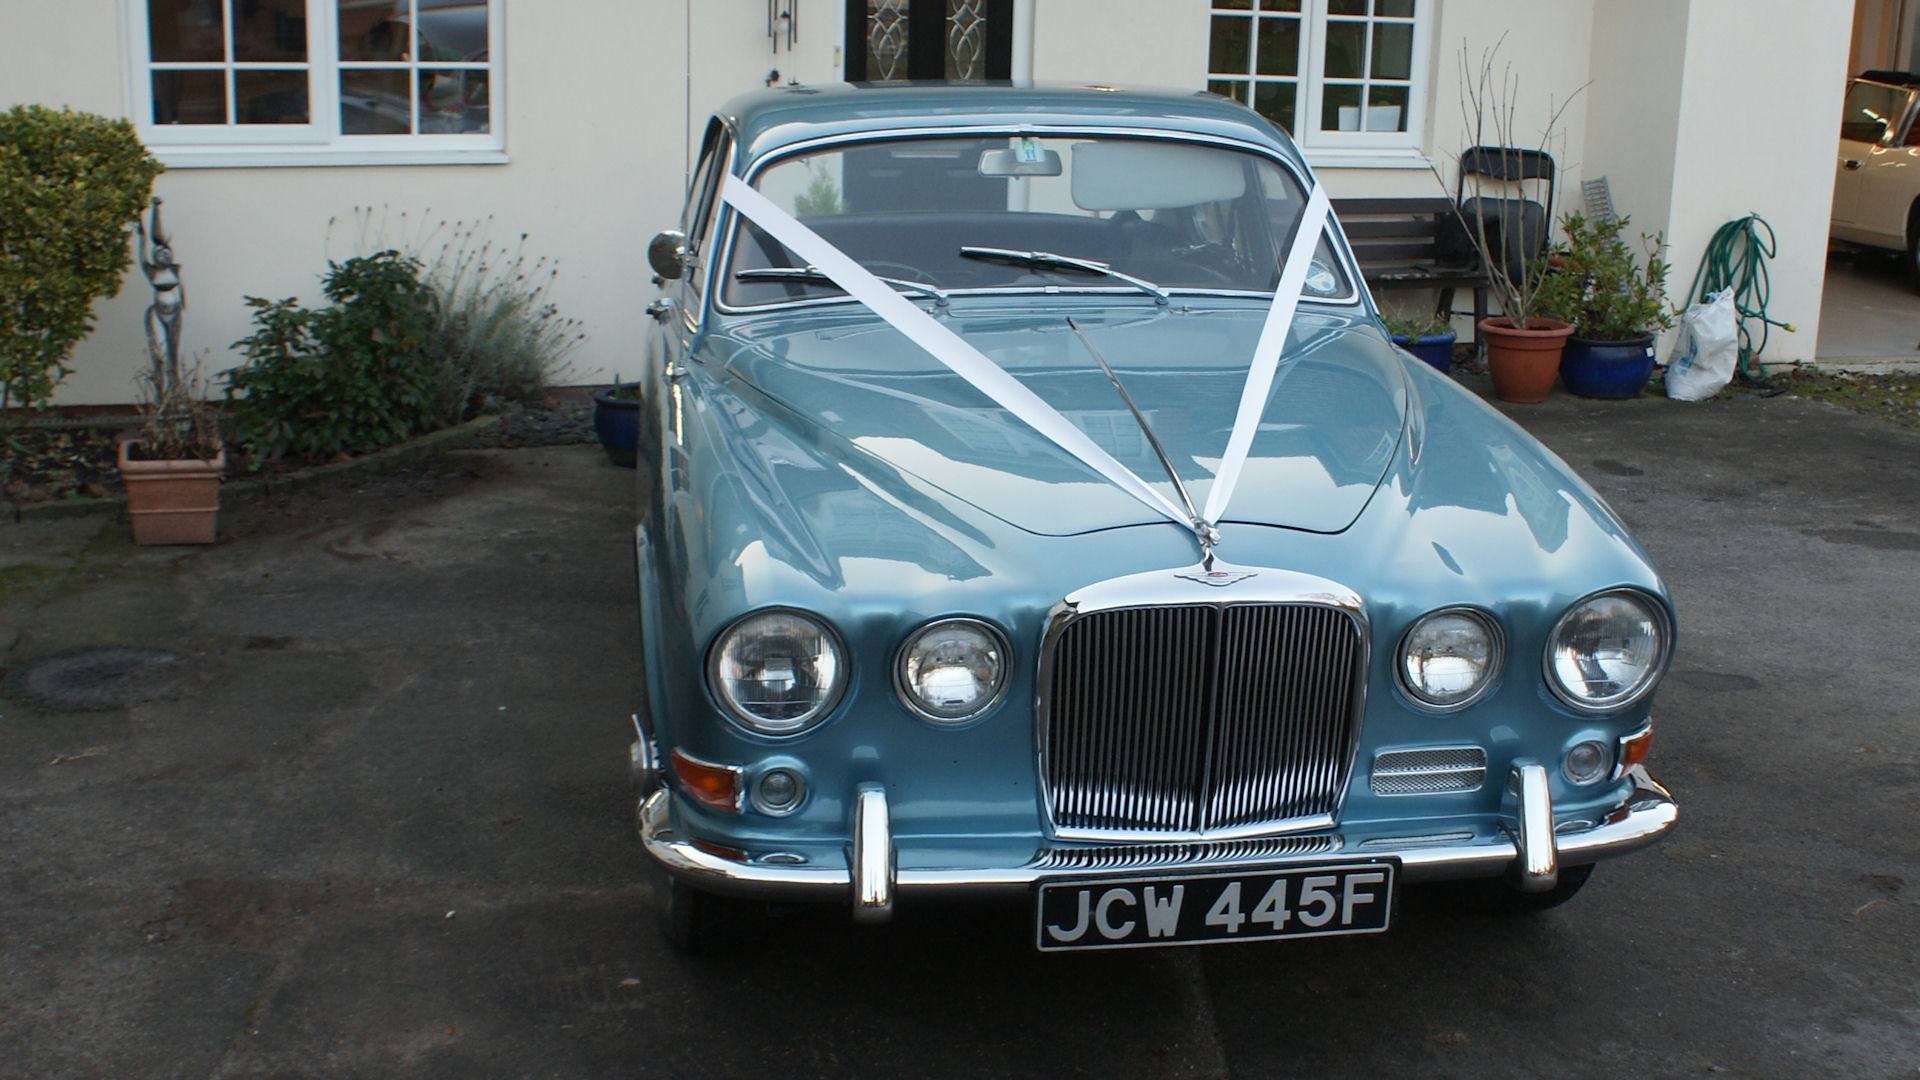 A really beautiful Jaguar wedding car&nbsp;&nbsp;&nbsp; - &nbsp;&nbsp;&nbsp;<small>&copy;&nbsp;&nbsp; David Jones&nbsp;</small>